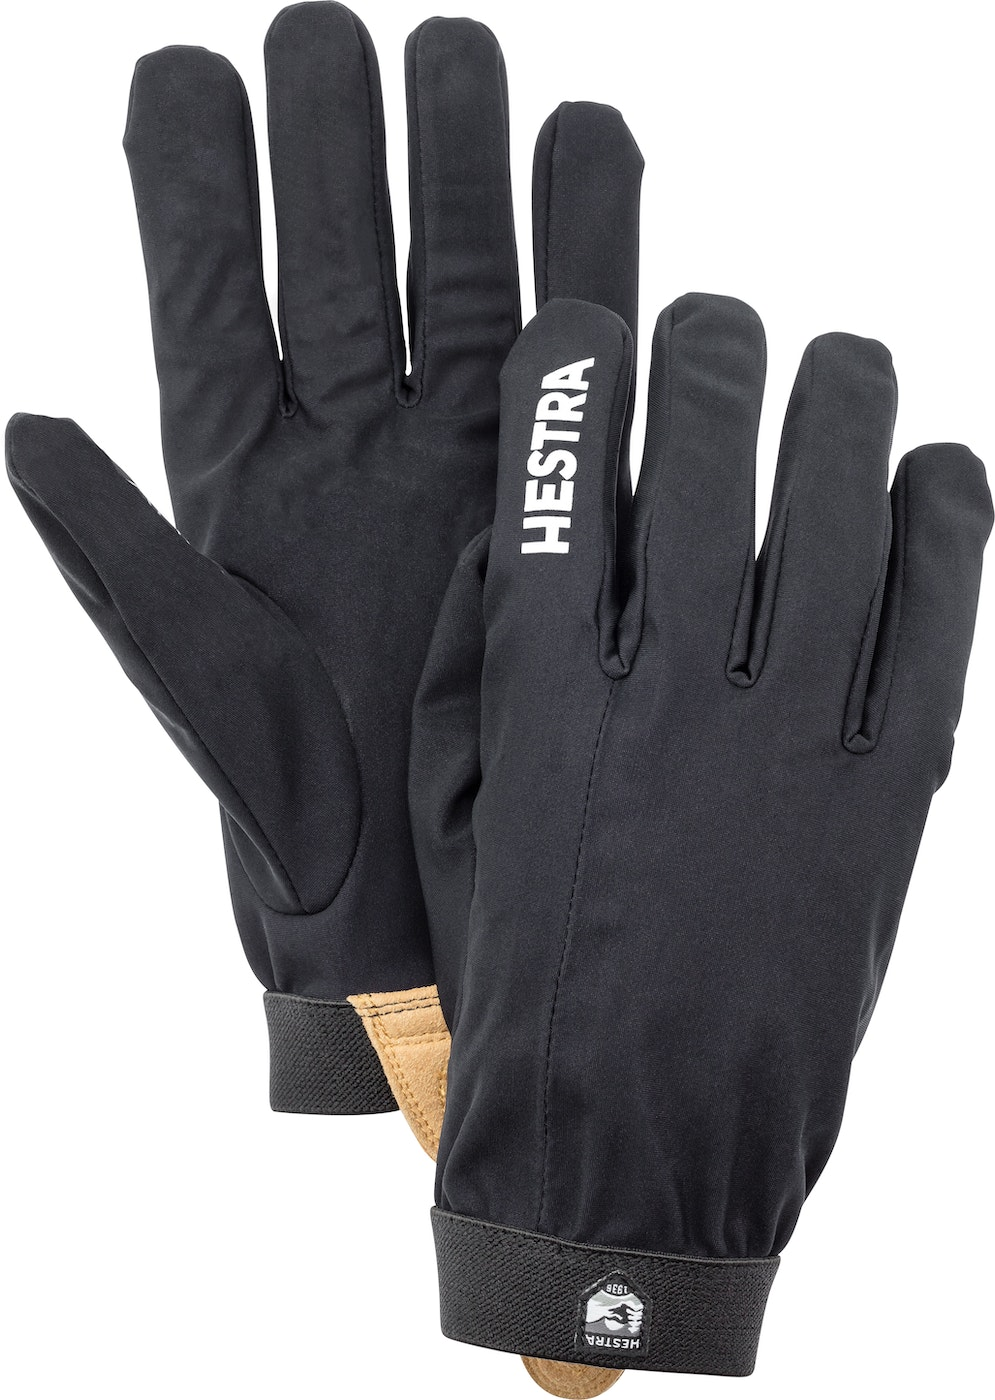 Product image for 31260 Nimbus Glove